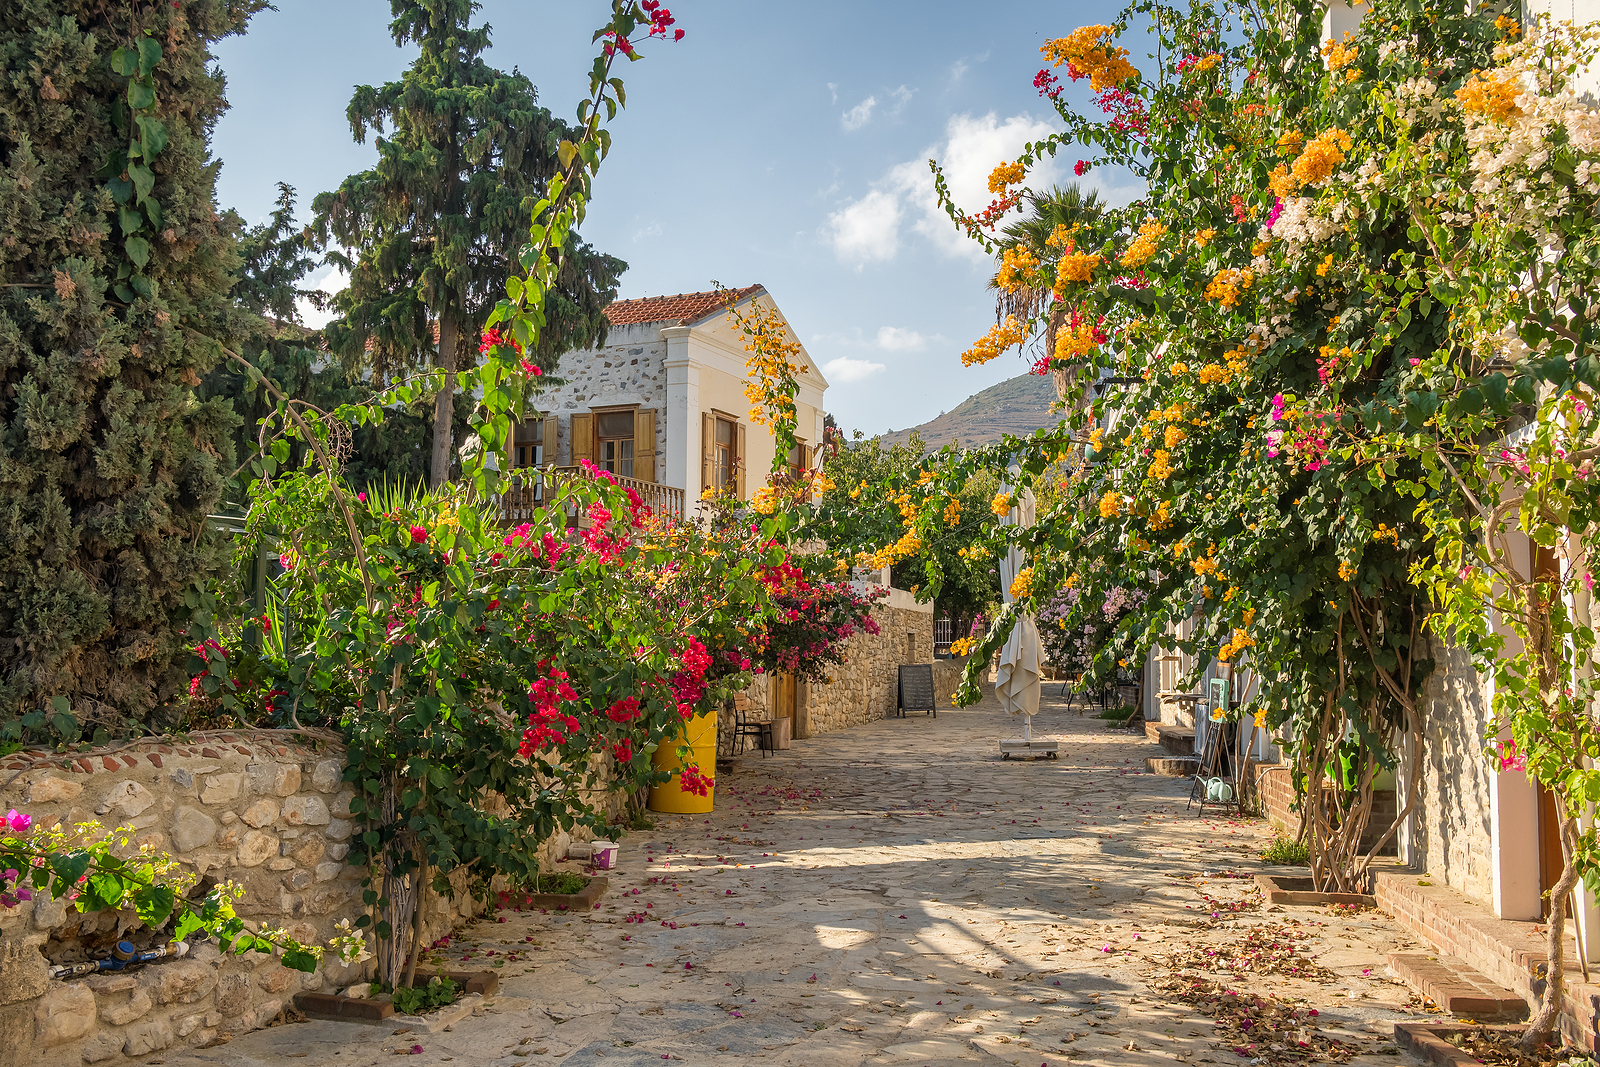 Colorful streets of Old Datca, Turkey